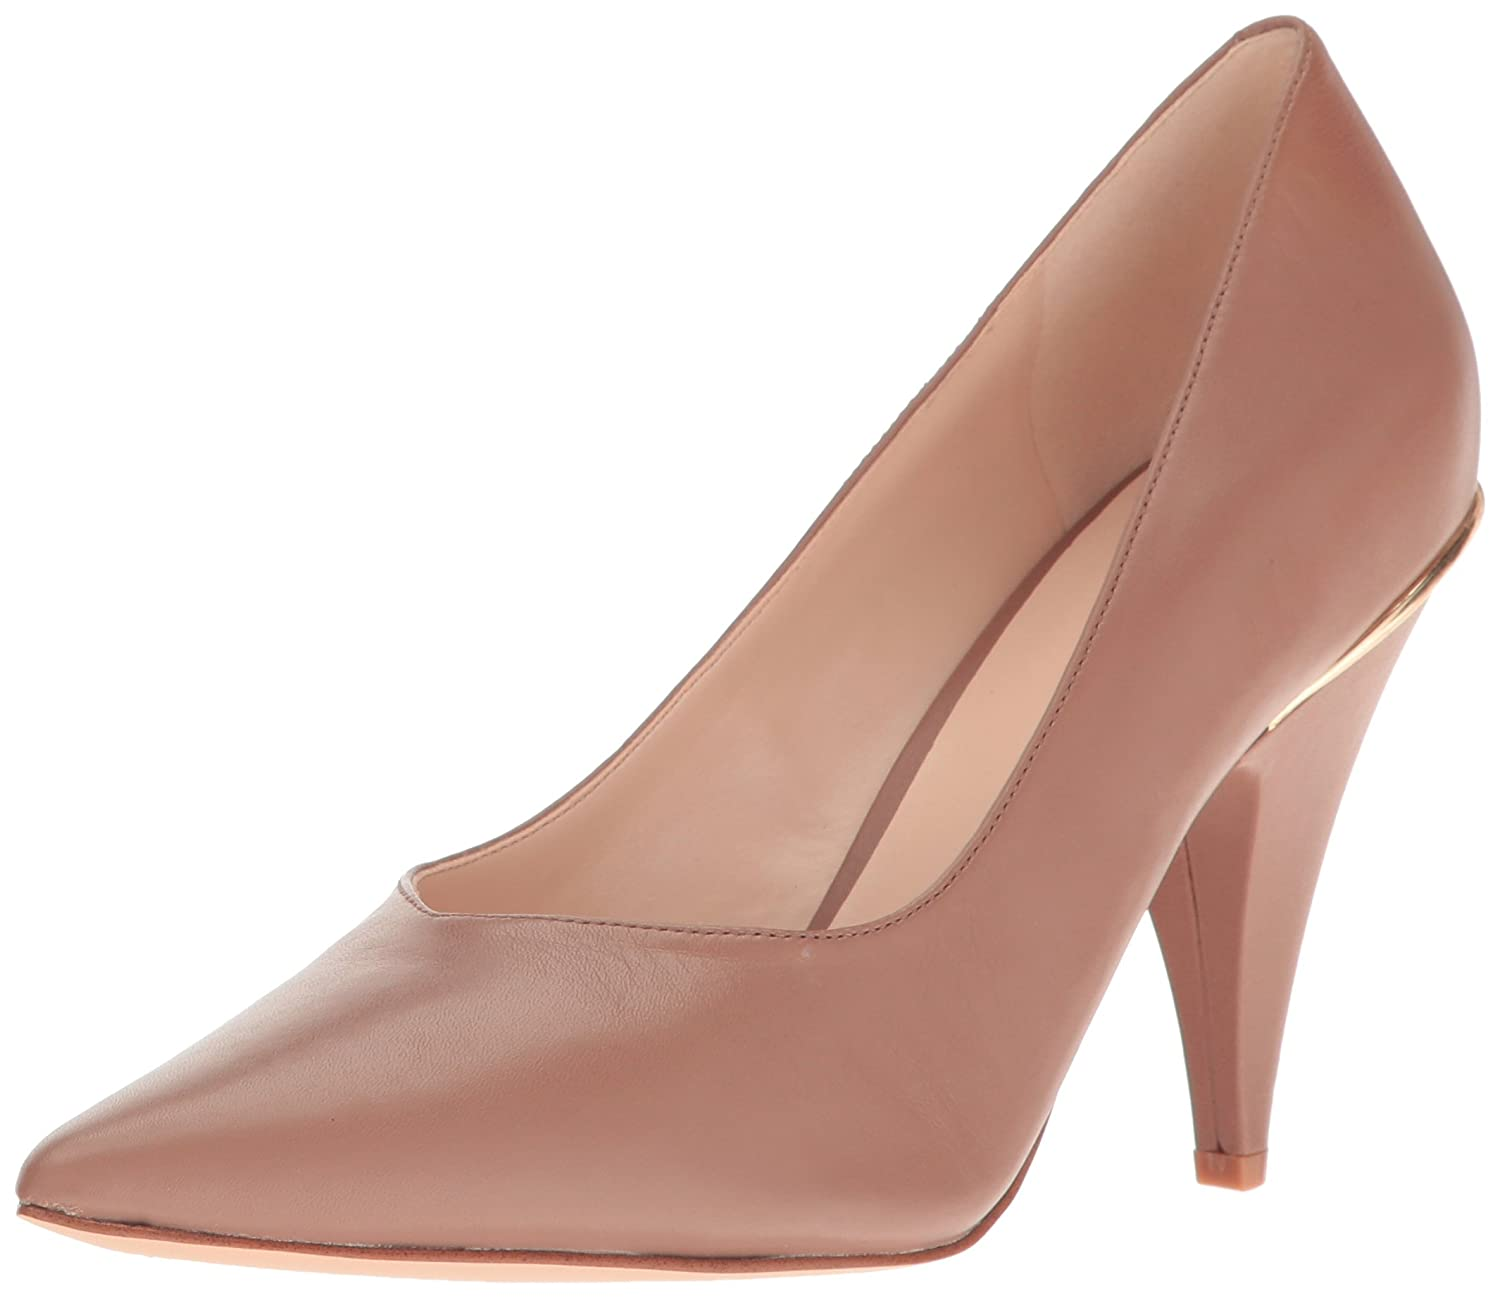 Nine West Women's Whistles Leather Pump B01MSW8WOS 9 B(M) US|Natural